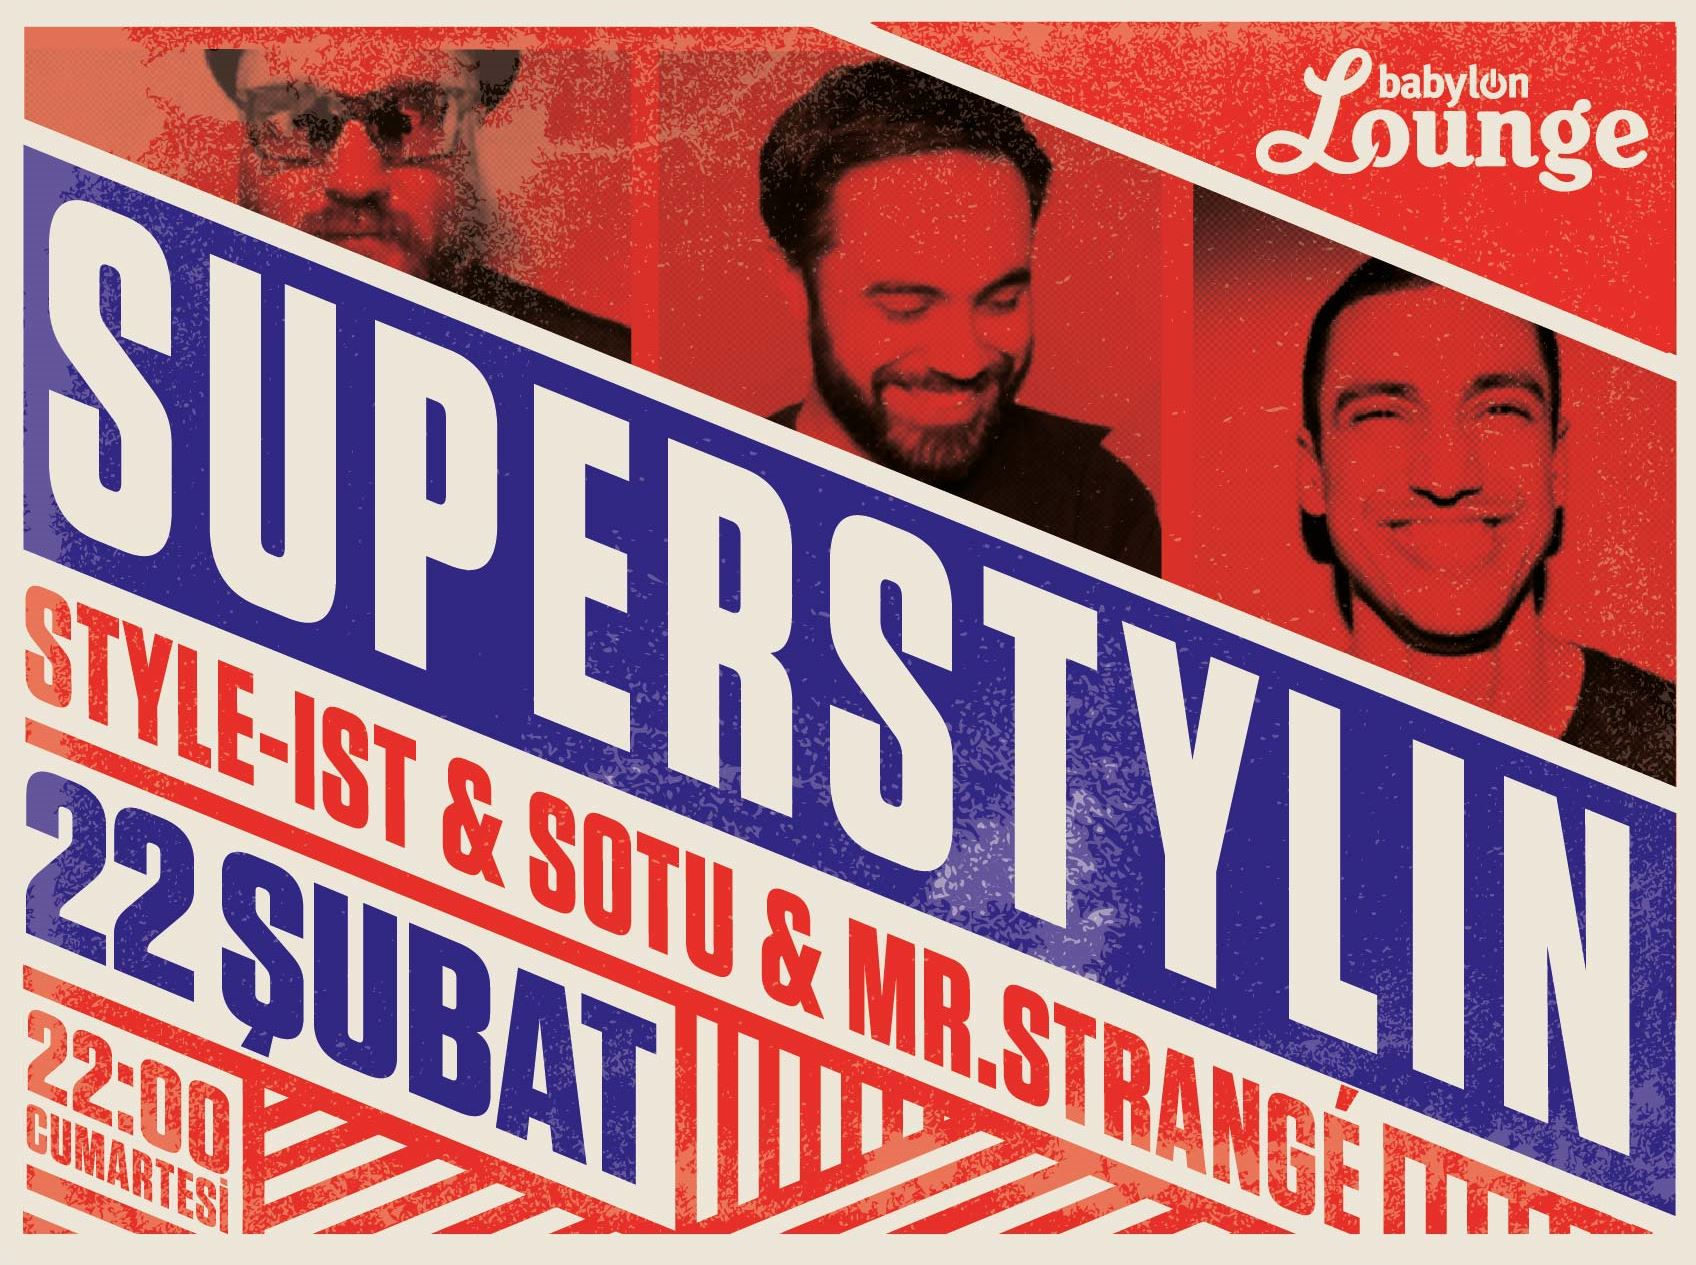 Superstylin: Style-ist & Sotu & Mr. Strangé